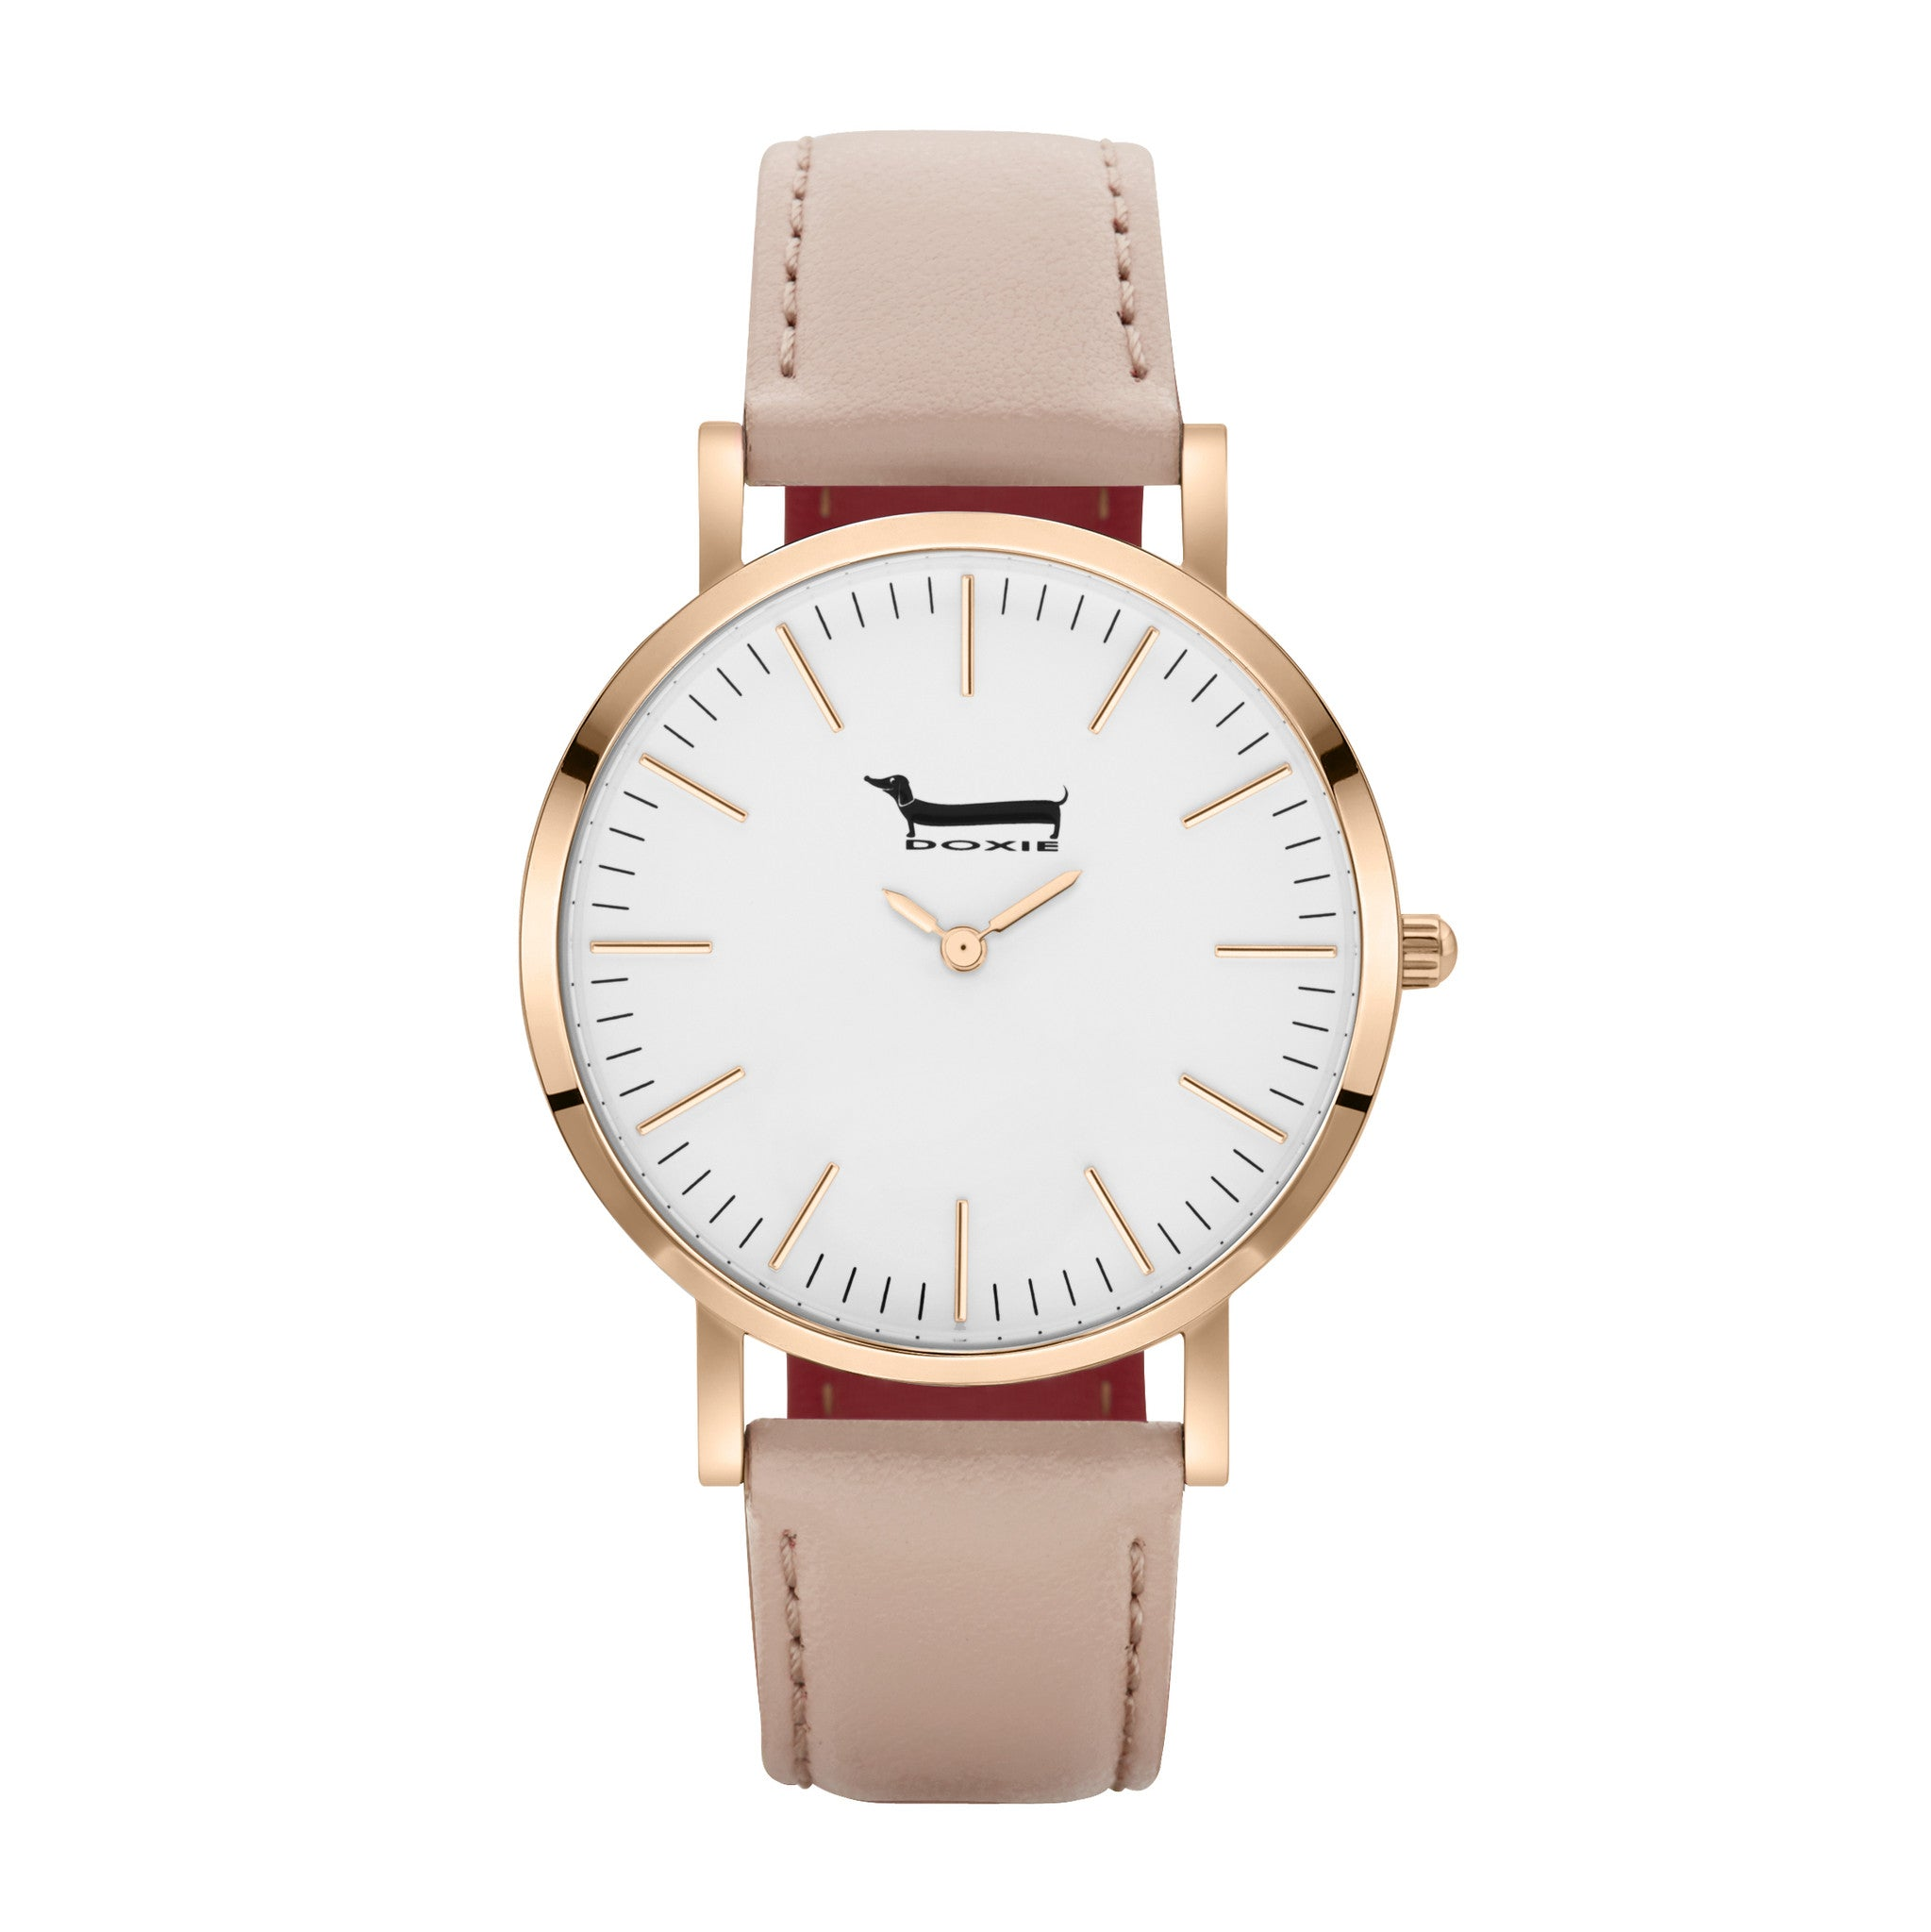 trend nude shades adore peachy peach mum oliviaburton your will pin watches